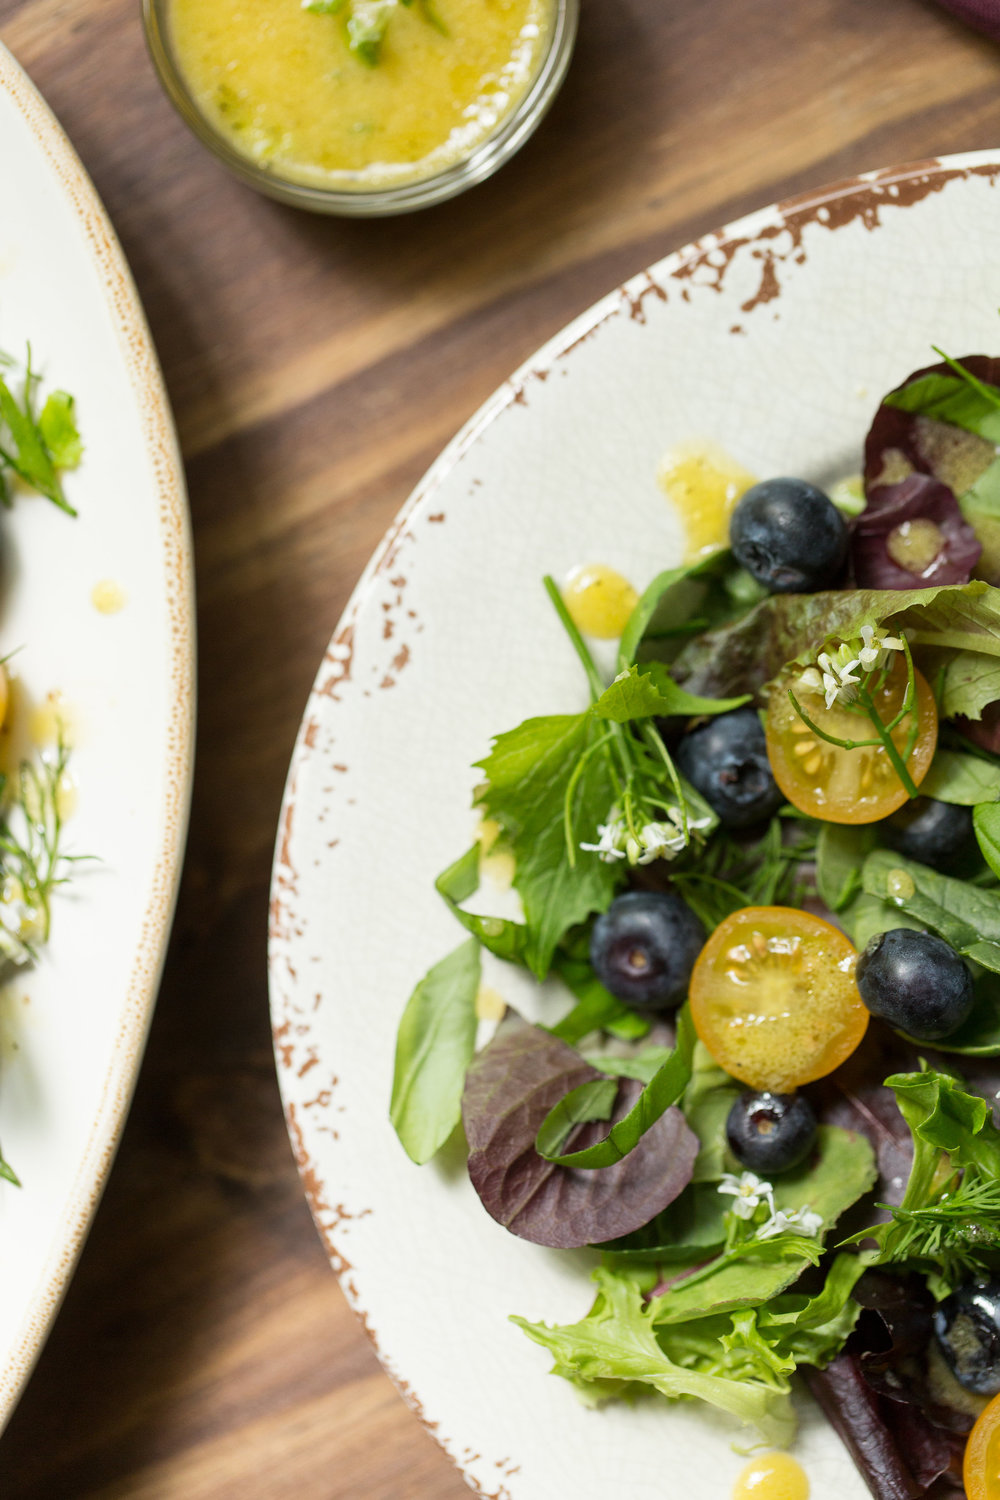 Perfect for summer, this fresh herb and edible flower salad takes advantage of everything growing in your garden. Get the recipe on CTEatsOut.com